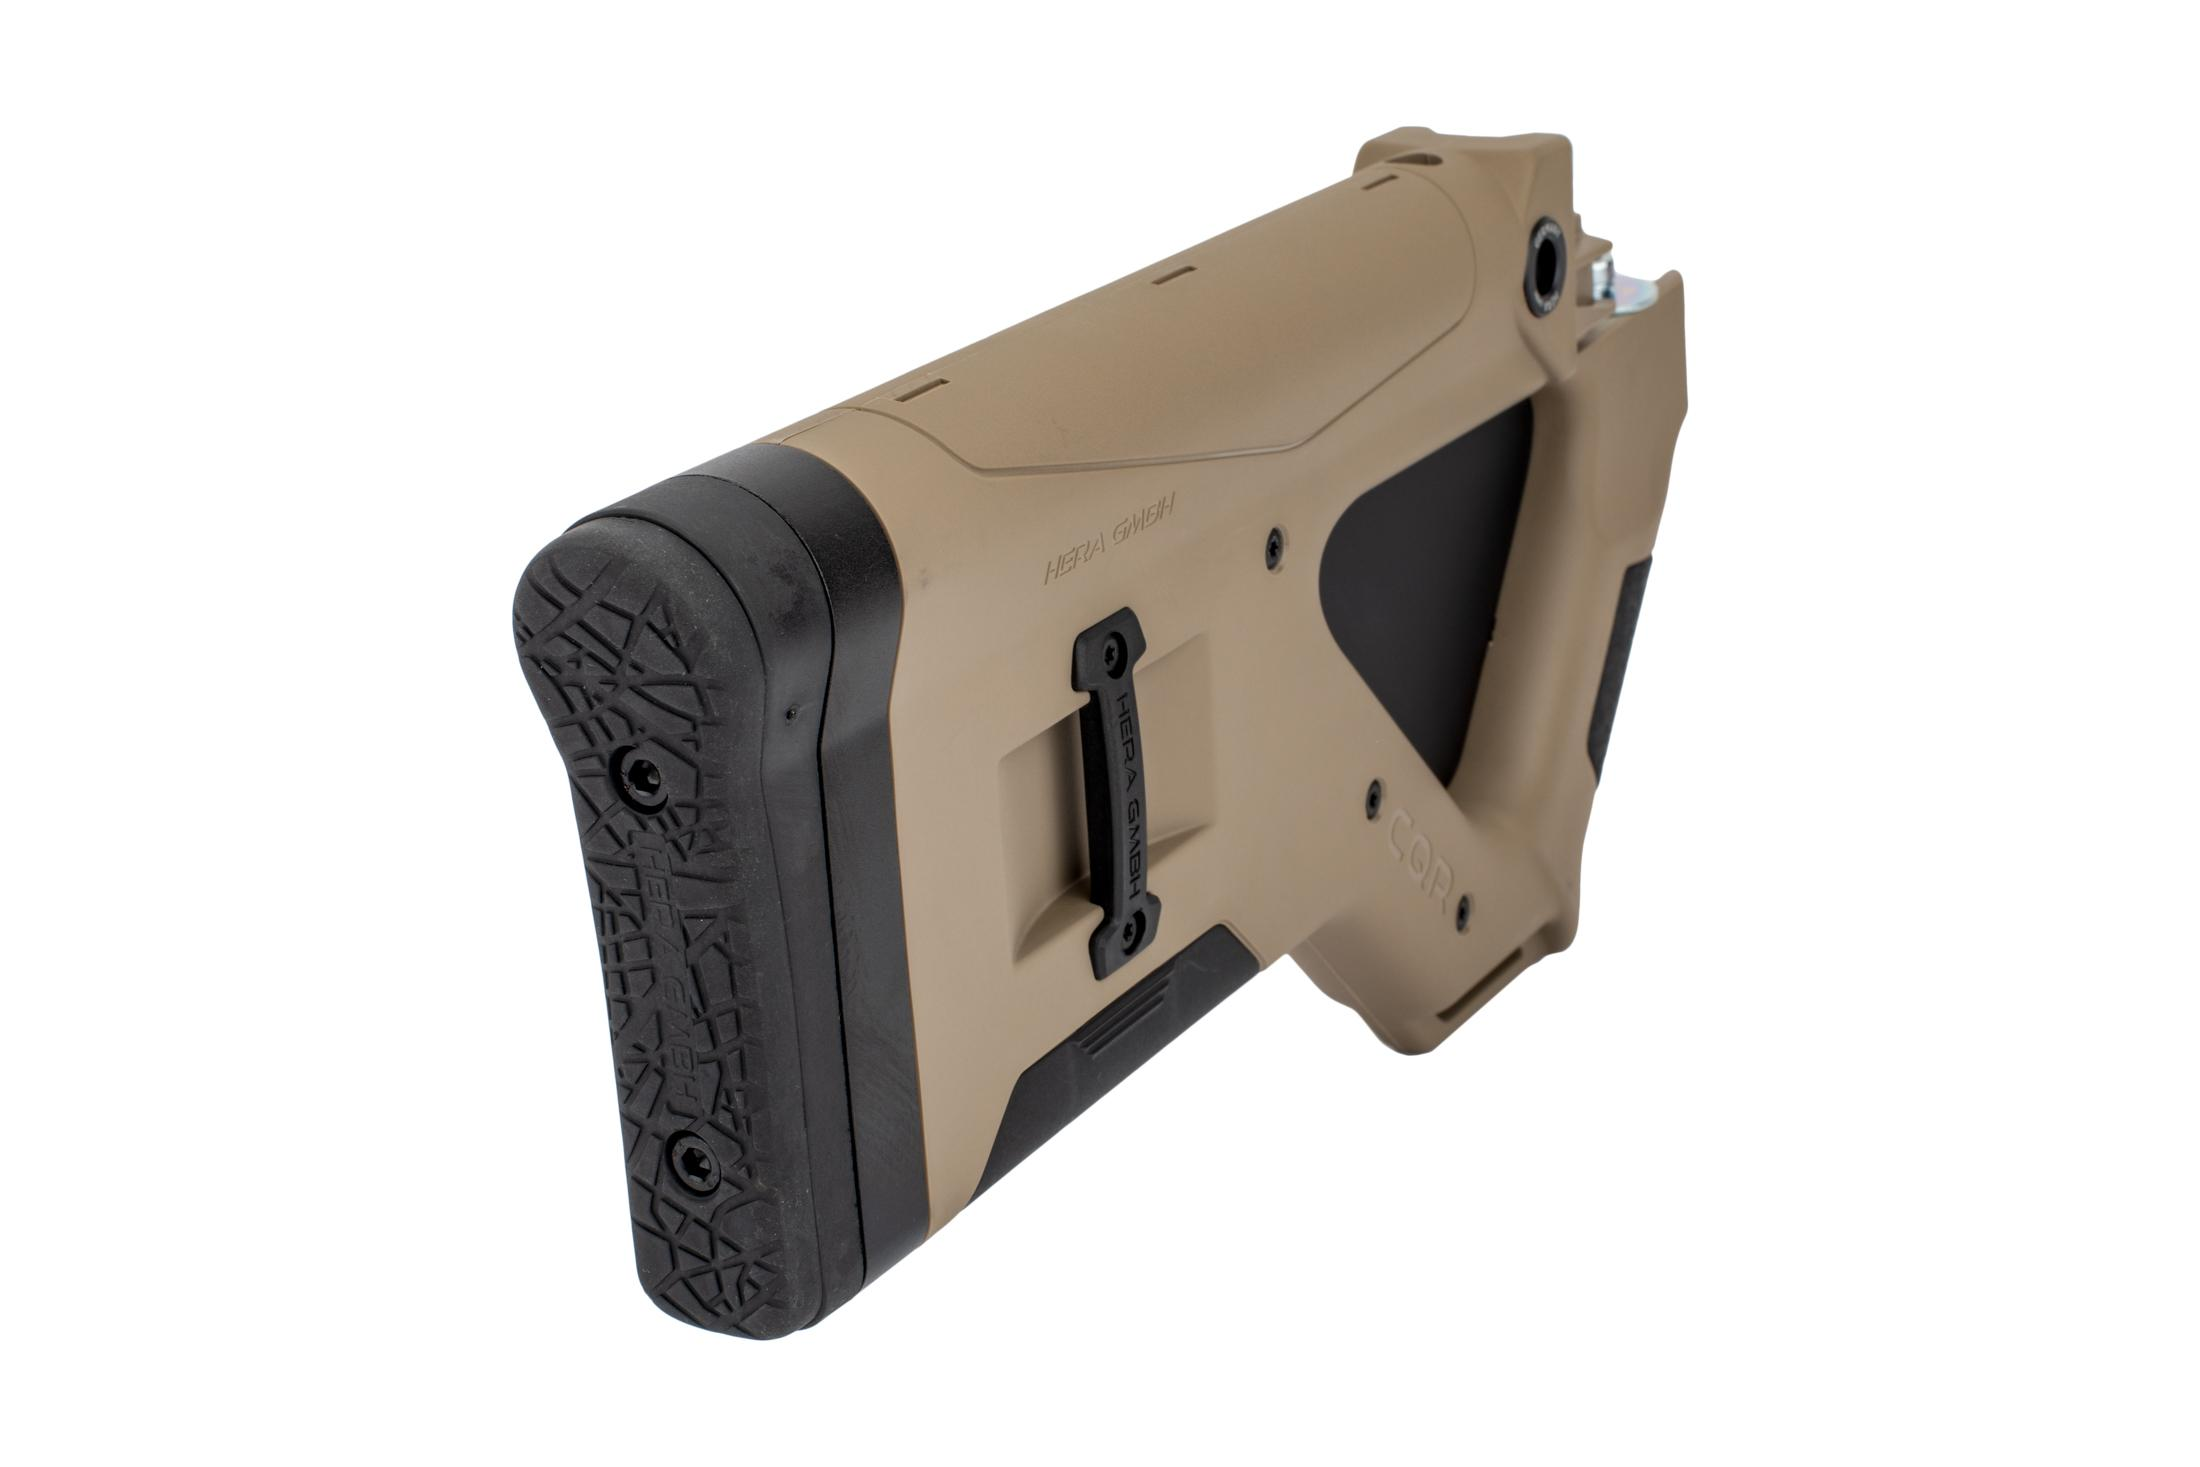 The Hera Arms cqr featureless stock california version is designed for stamped AK receivers